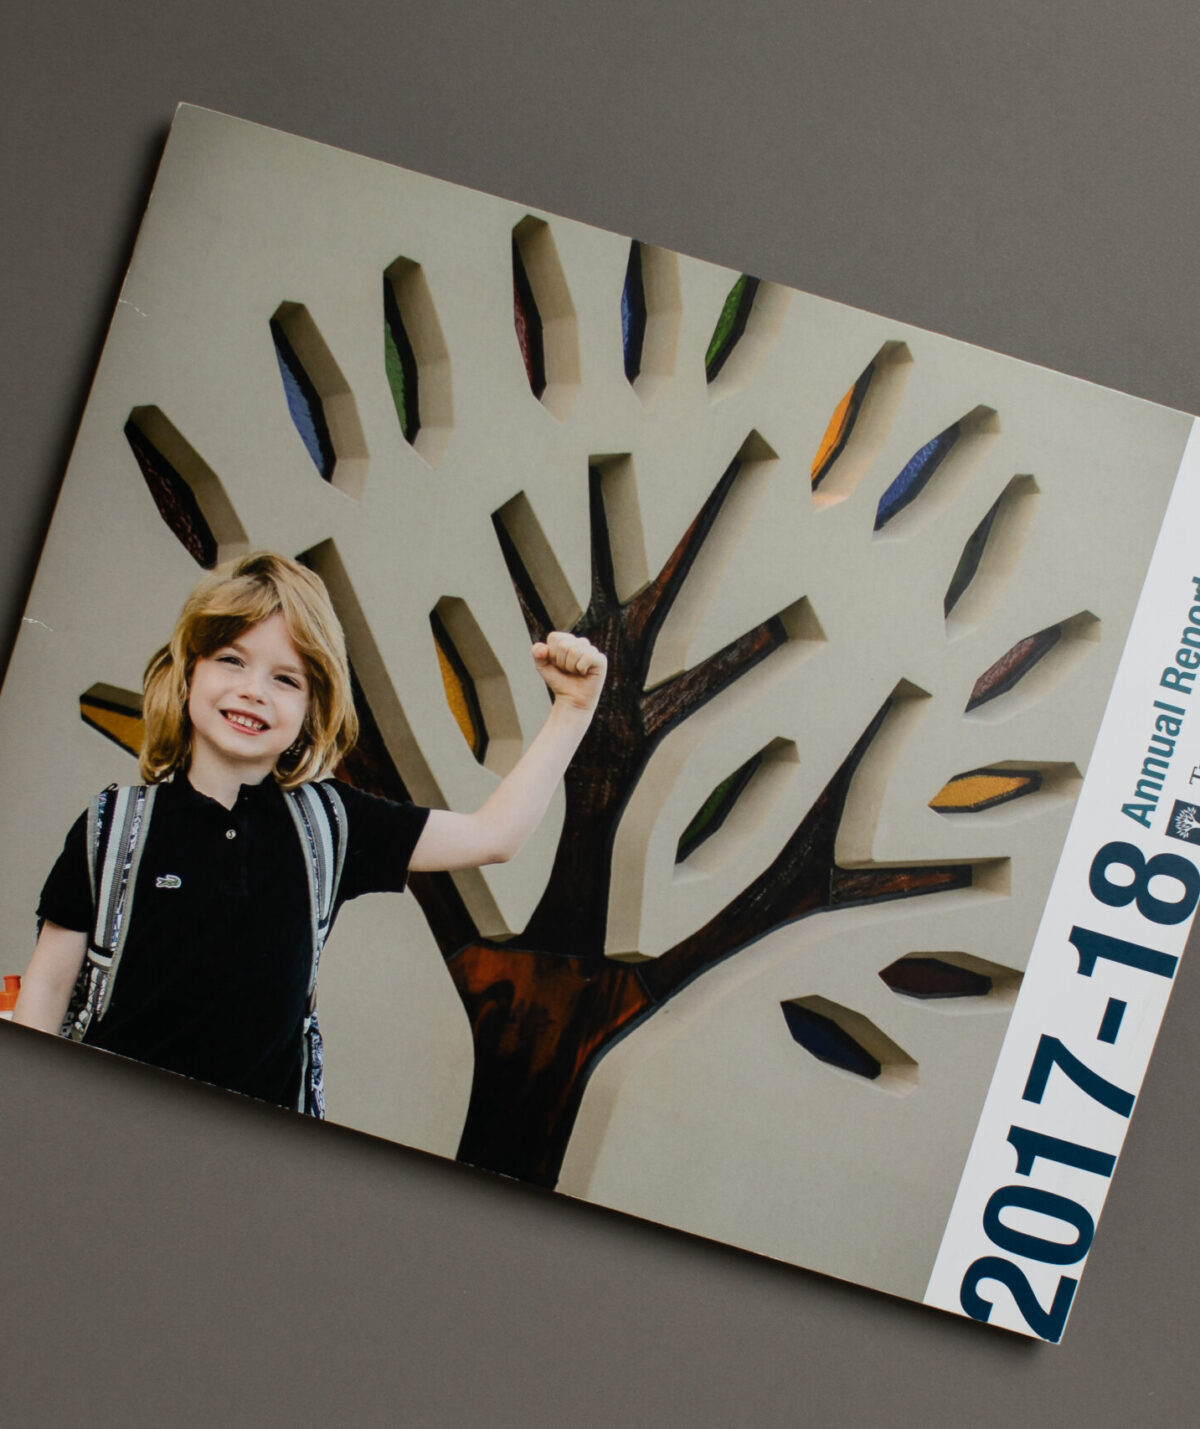 Fundraising Report Print Mail Project for Miami Valley School by Oregon Printing Dayton OH